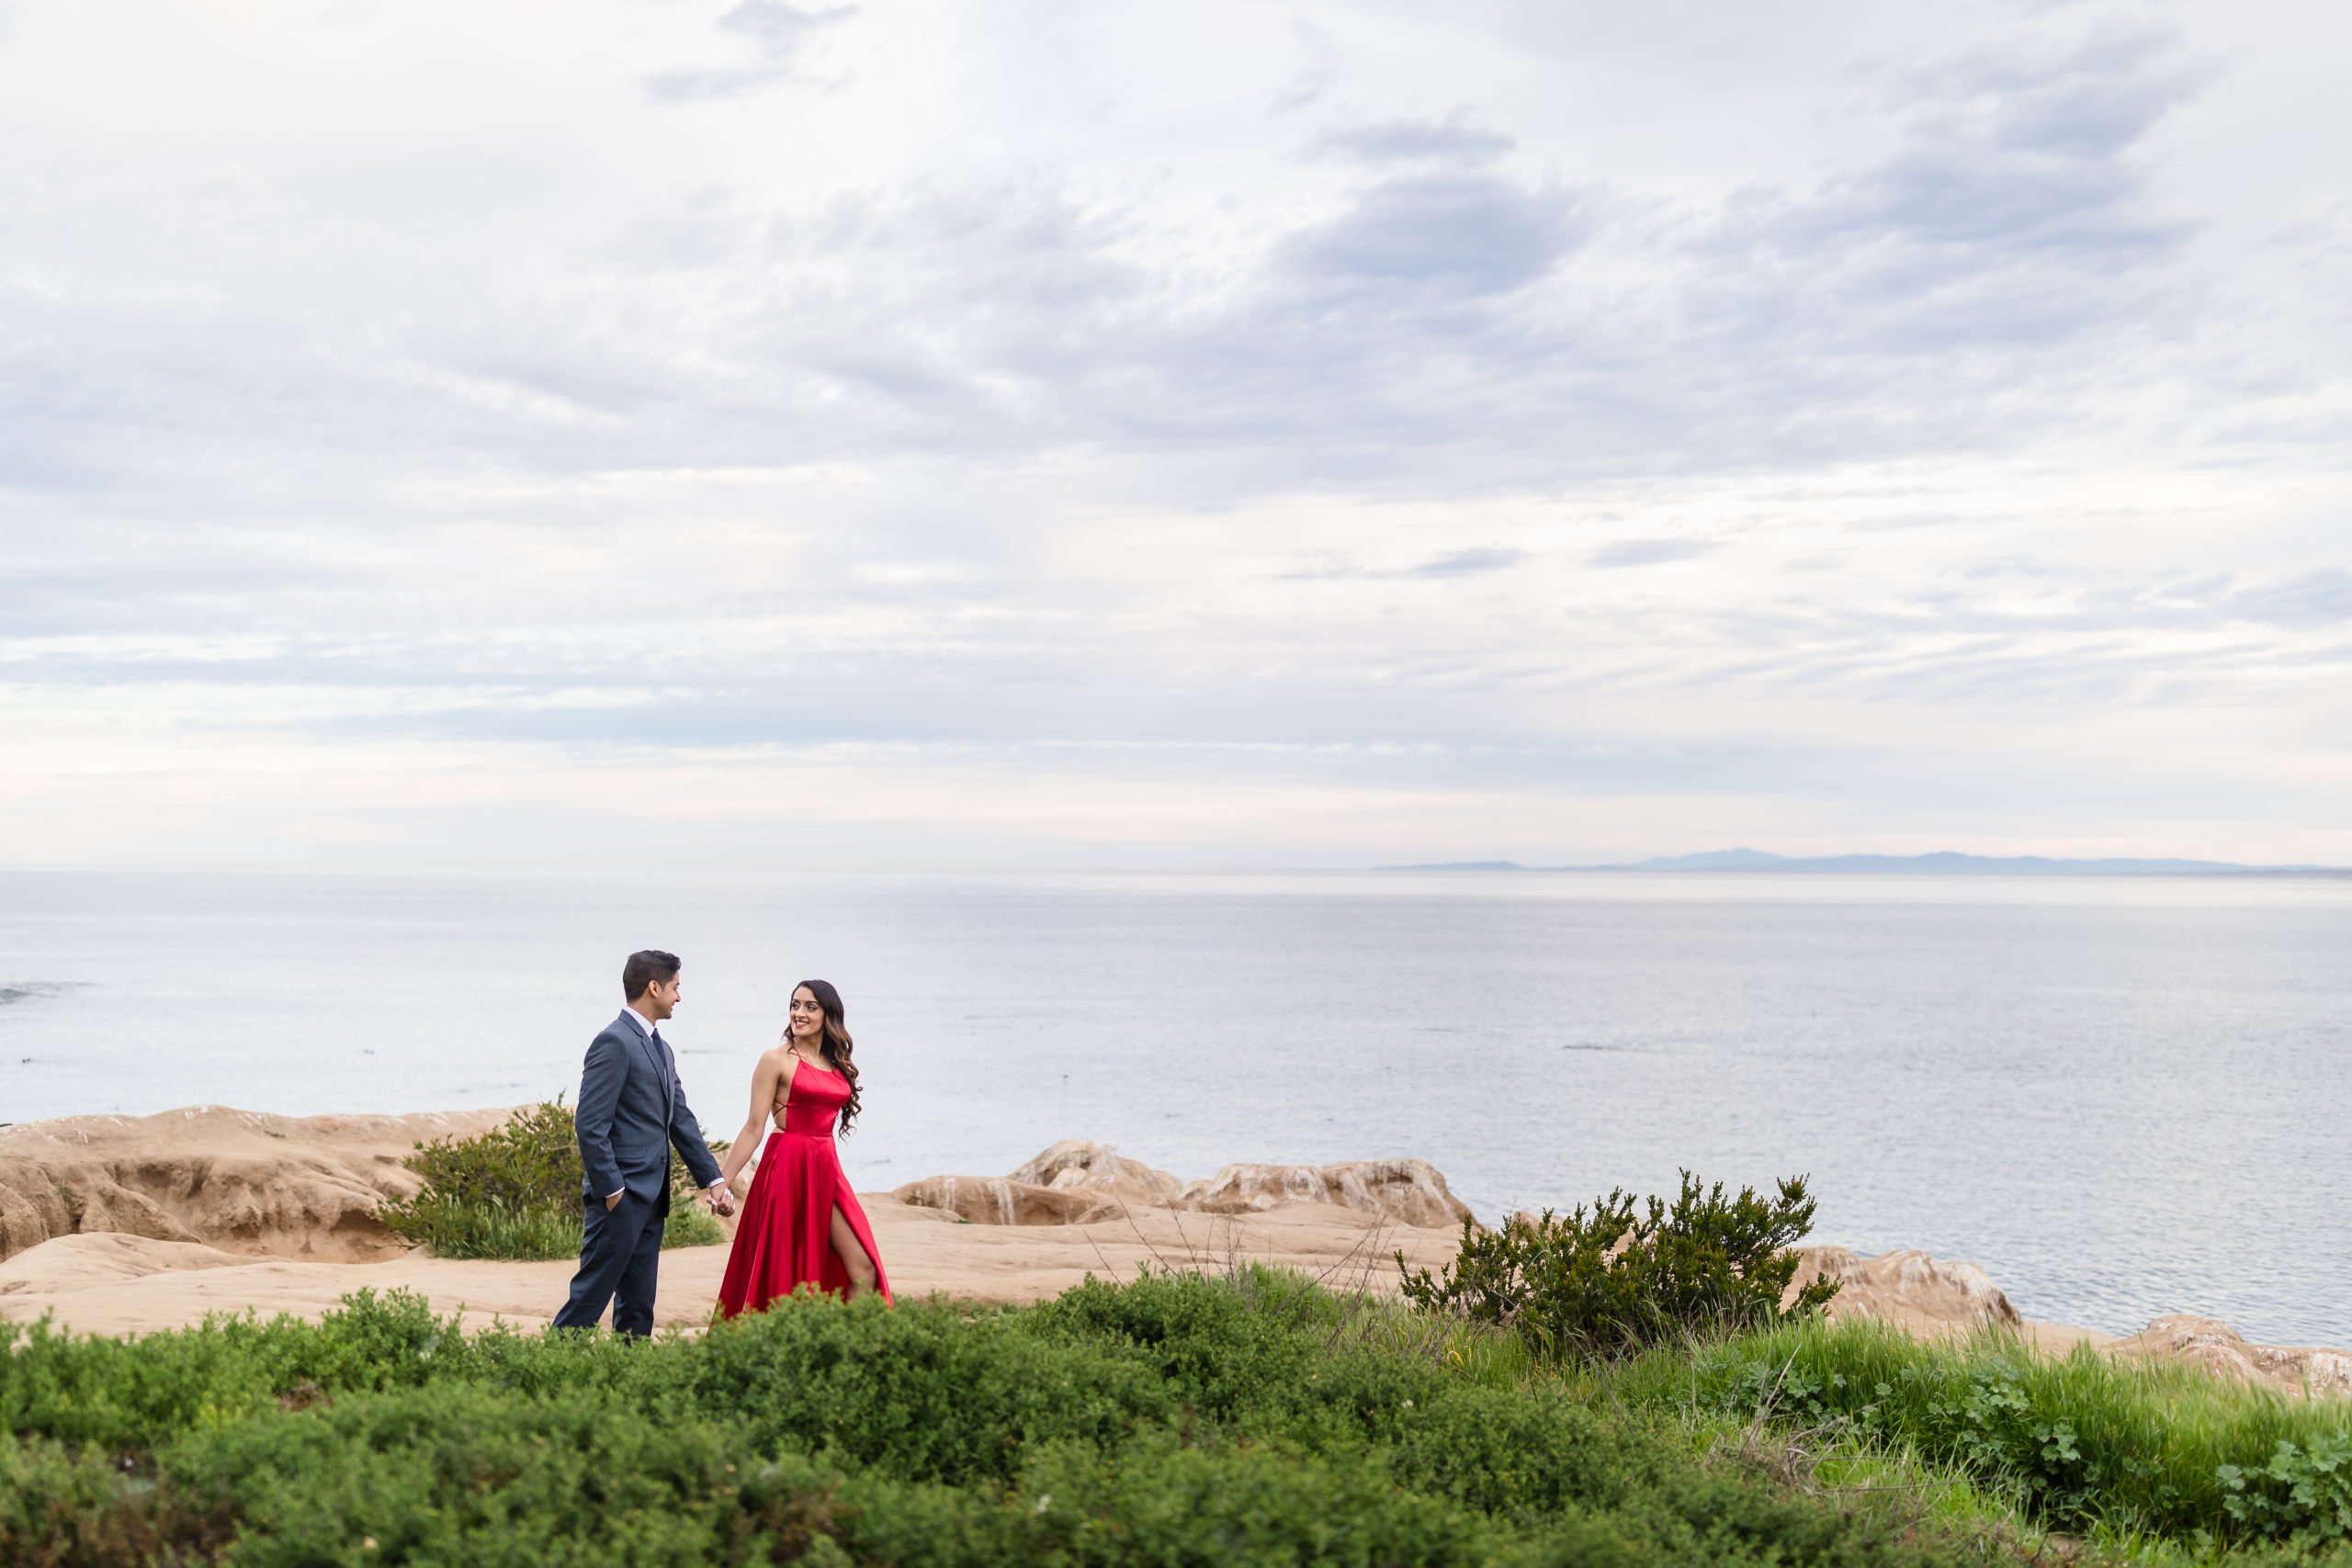 0020 PD La Jolla Cove San Diego County Engagement Photography